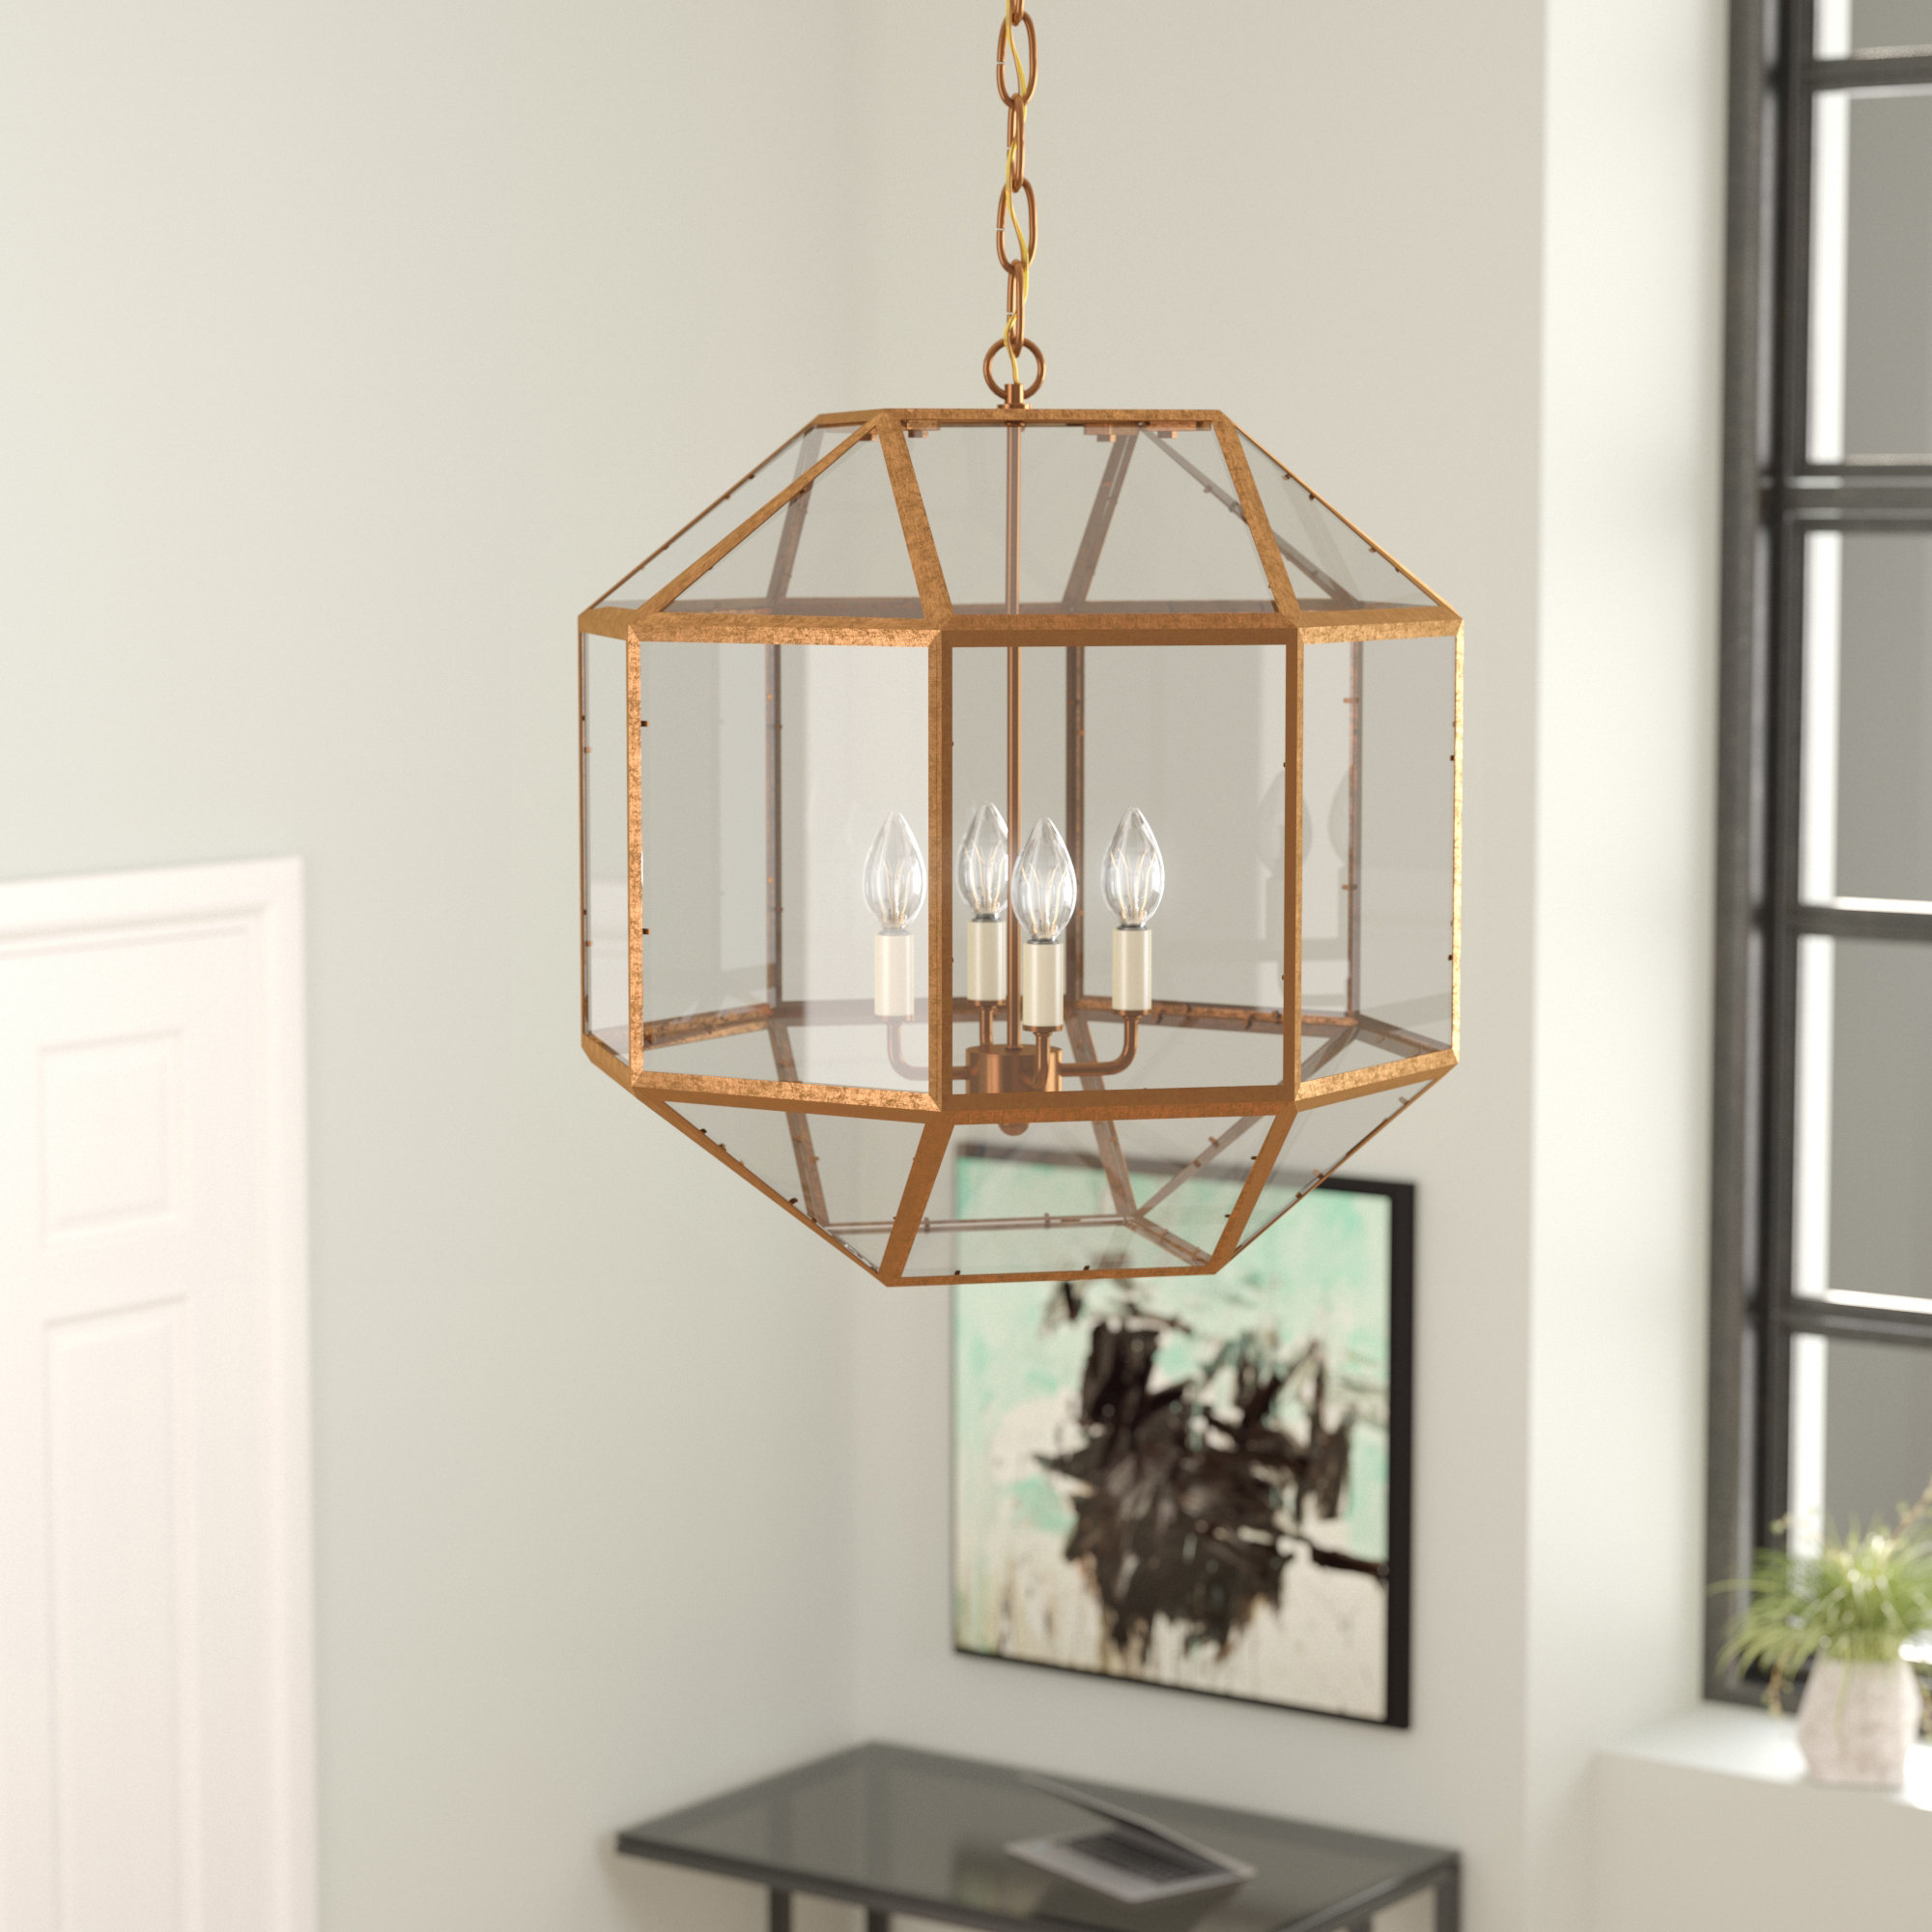 [%geometric Chandeliers Sale – Up To 65% Off Until September In Best And Newest Tabit 5 Light Geometric Chandeliers|tabit 5 Light Geometric Chandeliers Inside Recent Geometric Chandeliers Sale – Up To 65% Off Until September|newest Tabit 5 Light Geometric Chandeliers Inside Geometric Chandeliers Sale – Up To 65% Off Until September|2019 Geometric Chandeliers Sale – Up To 65% Off Until September Within Tabit 5 Light Geometric Chandeliers%] (View 15 of 20)